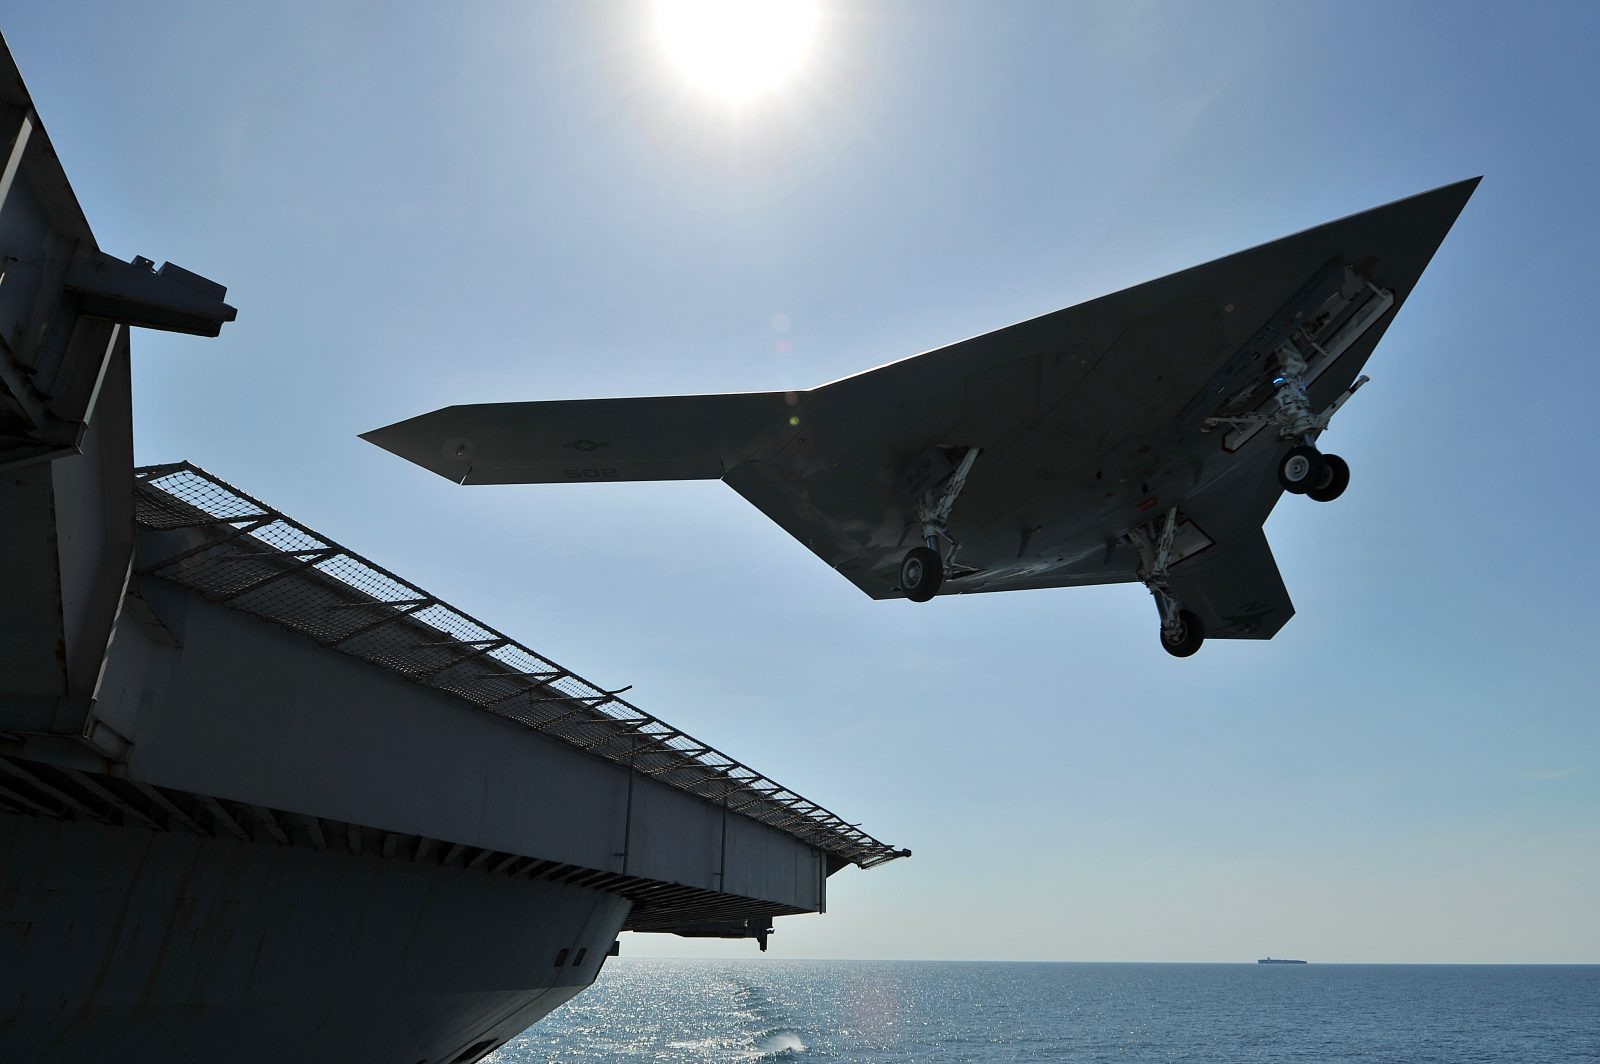 Next Generation Of Drones: How Drones Could Reshape Future Warfare